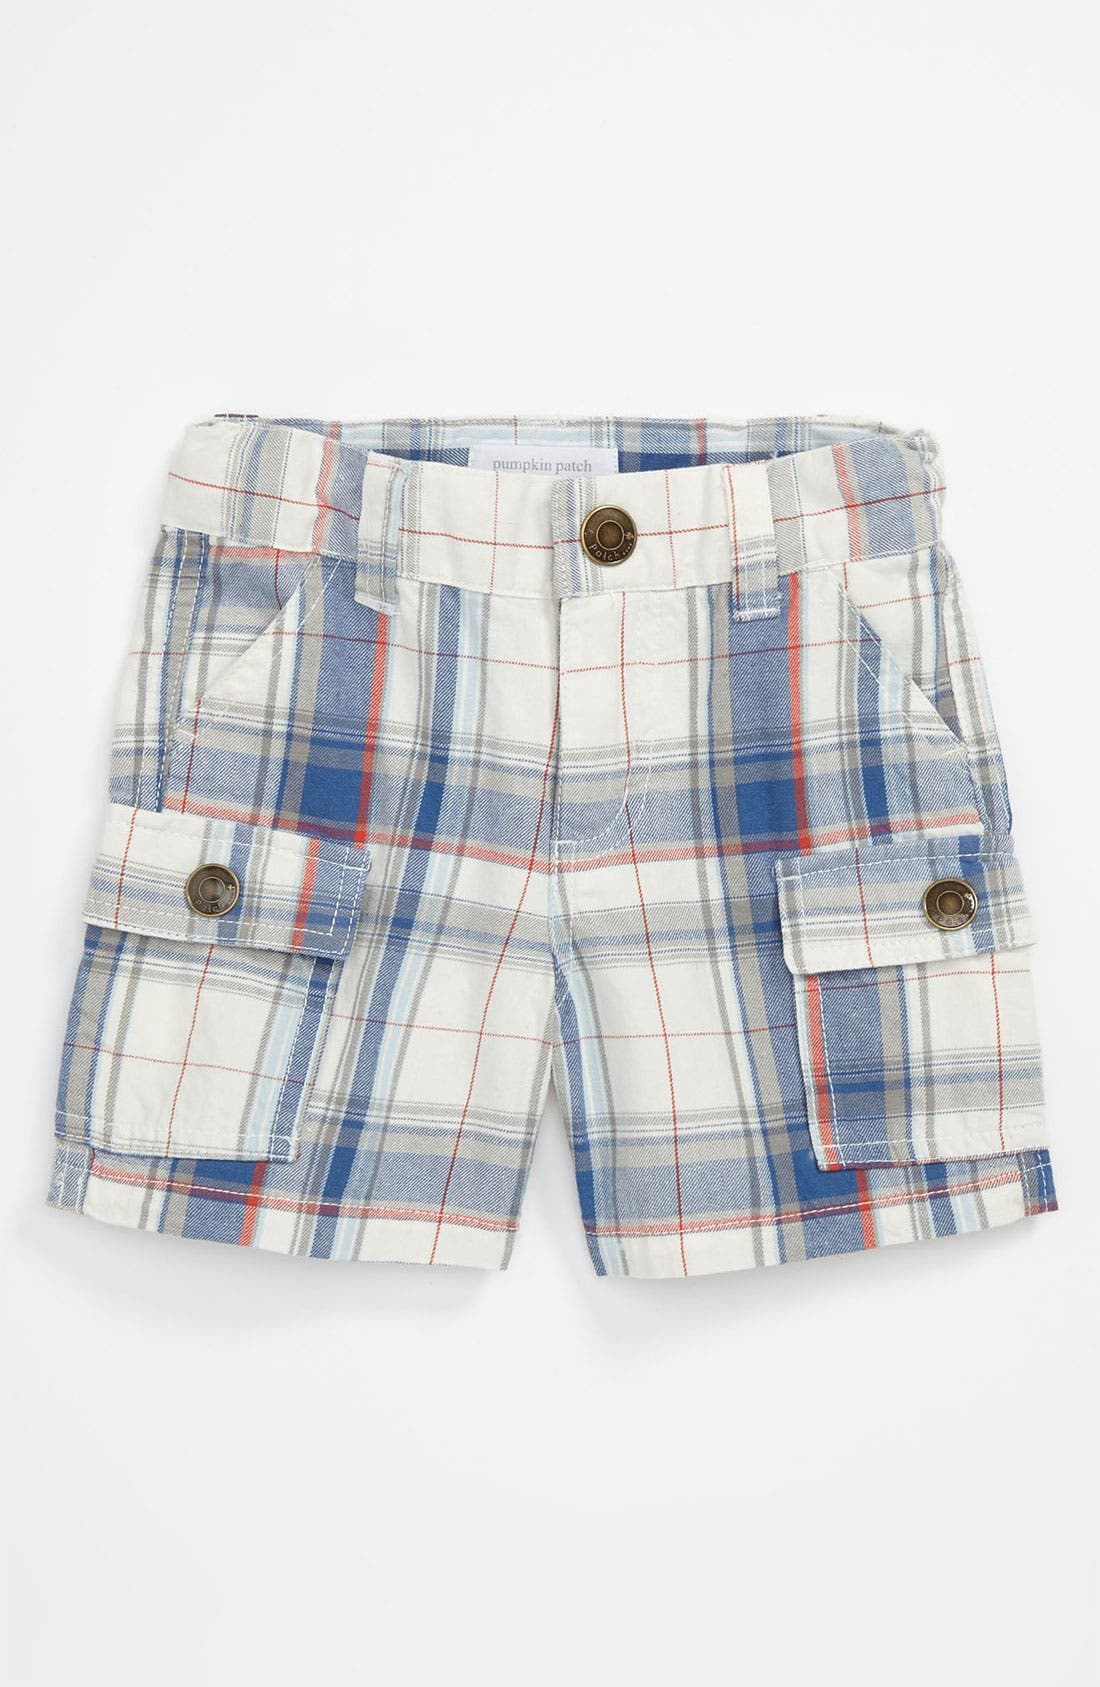 Main Image - Pumpkin Patch Plaid Cargo Shorts (Toddler)